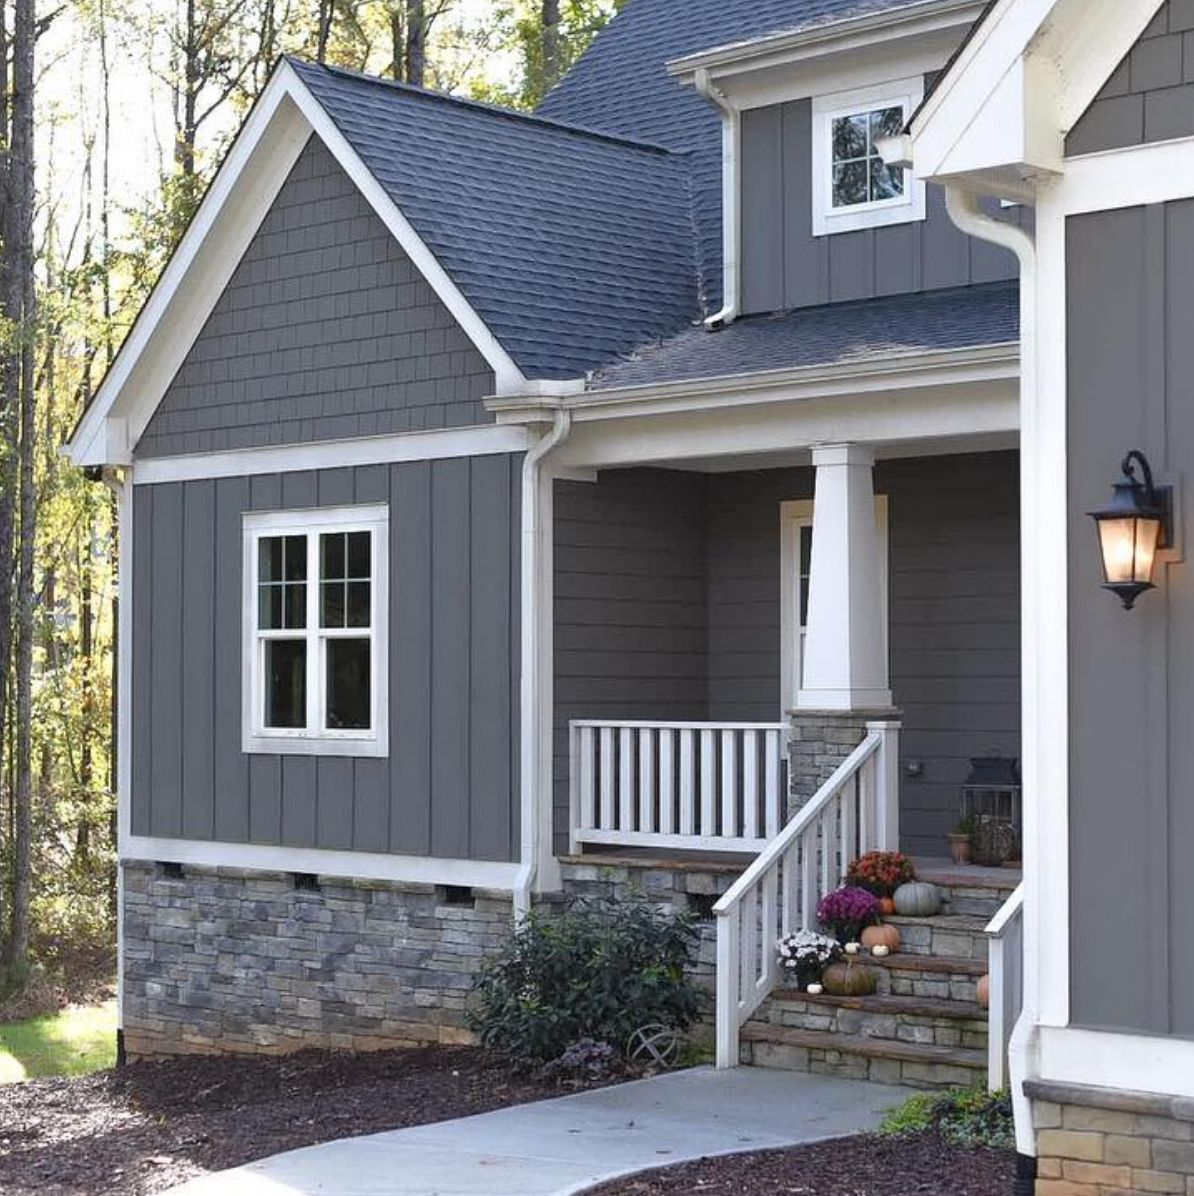 17 Curb Appeal Ideas That Will Entice Homebuyers